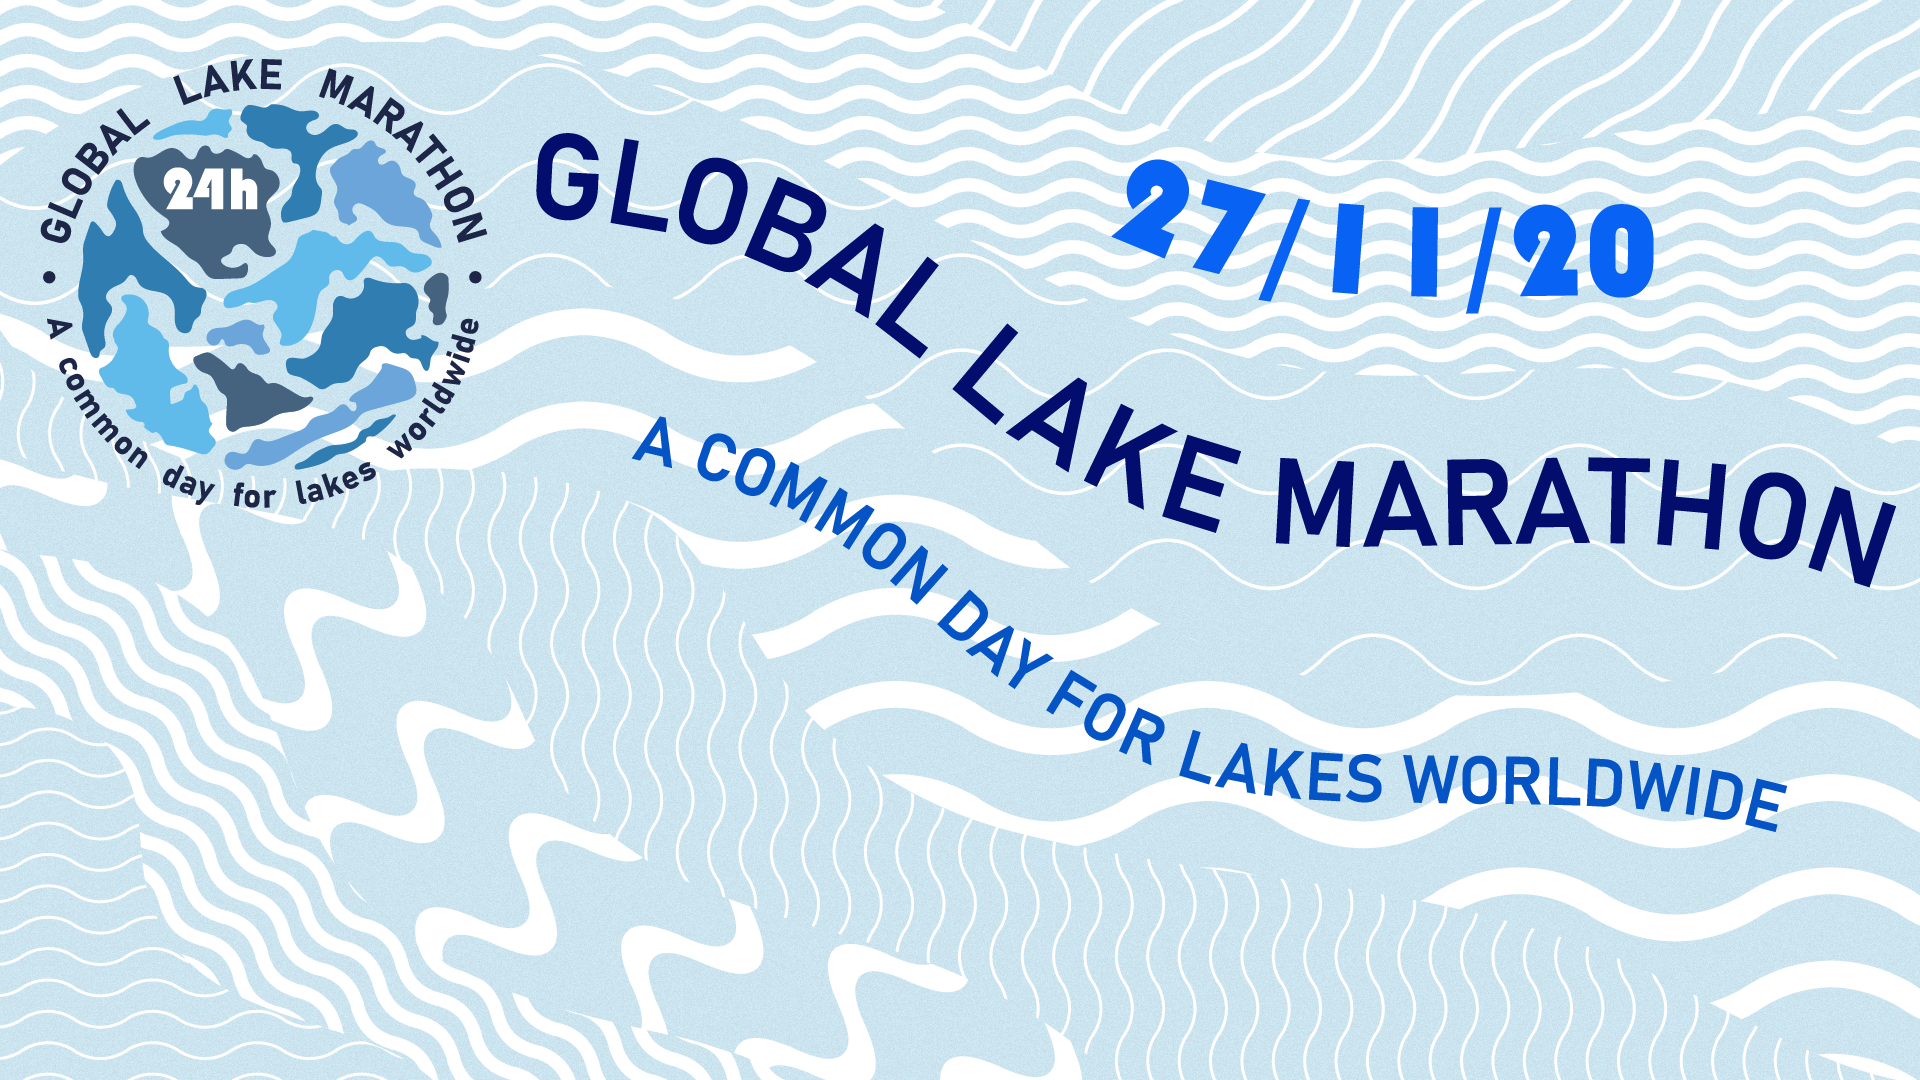 Global Lake Marathon